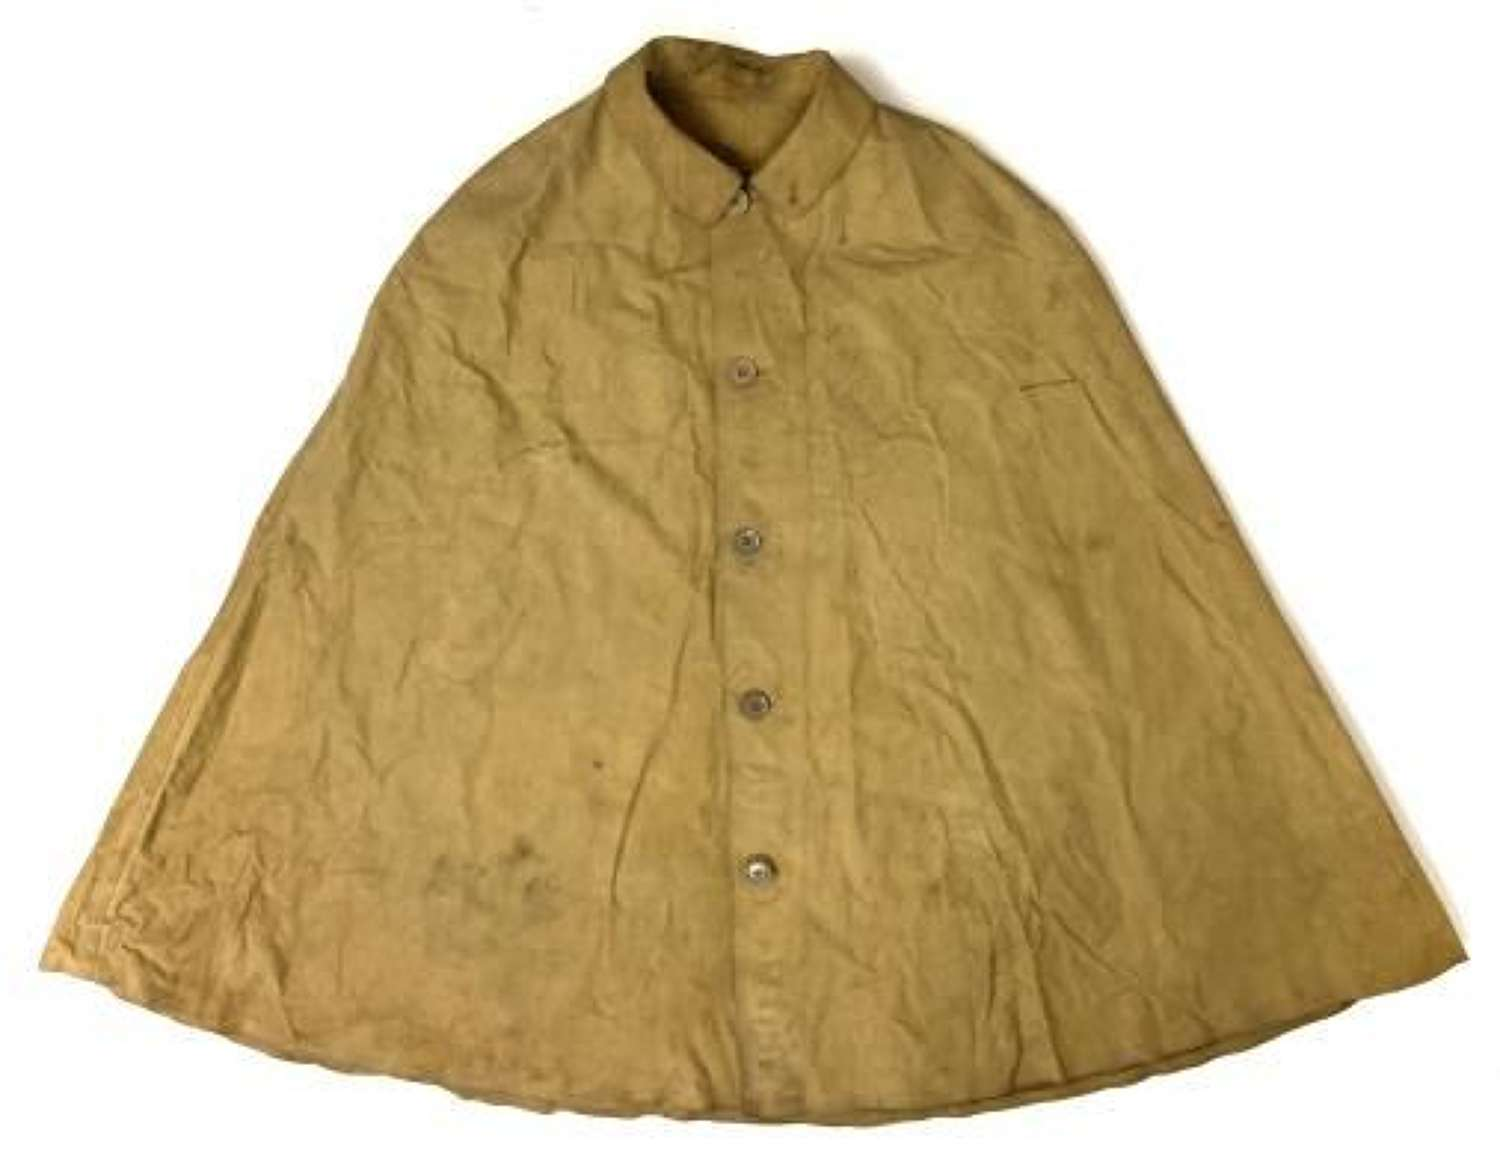 Original 1945 Dated British Rubberised Rain Cape - Royal Marines